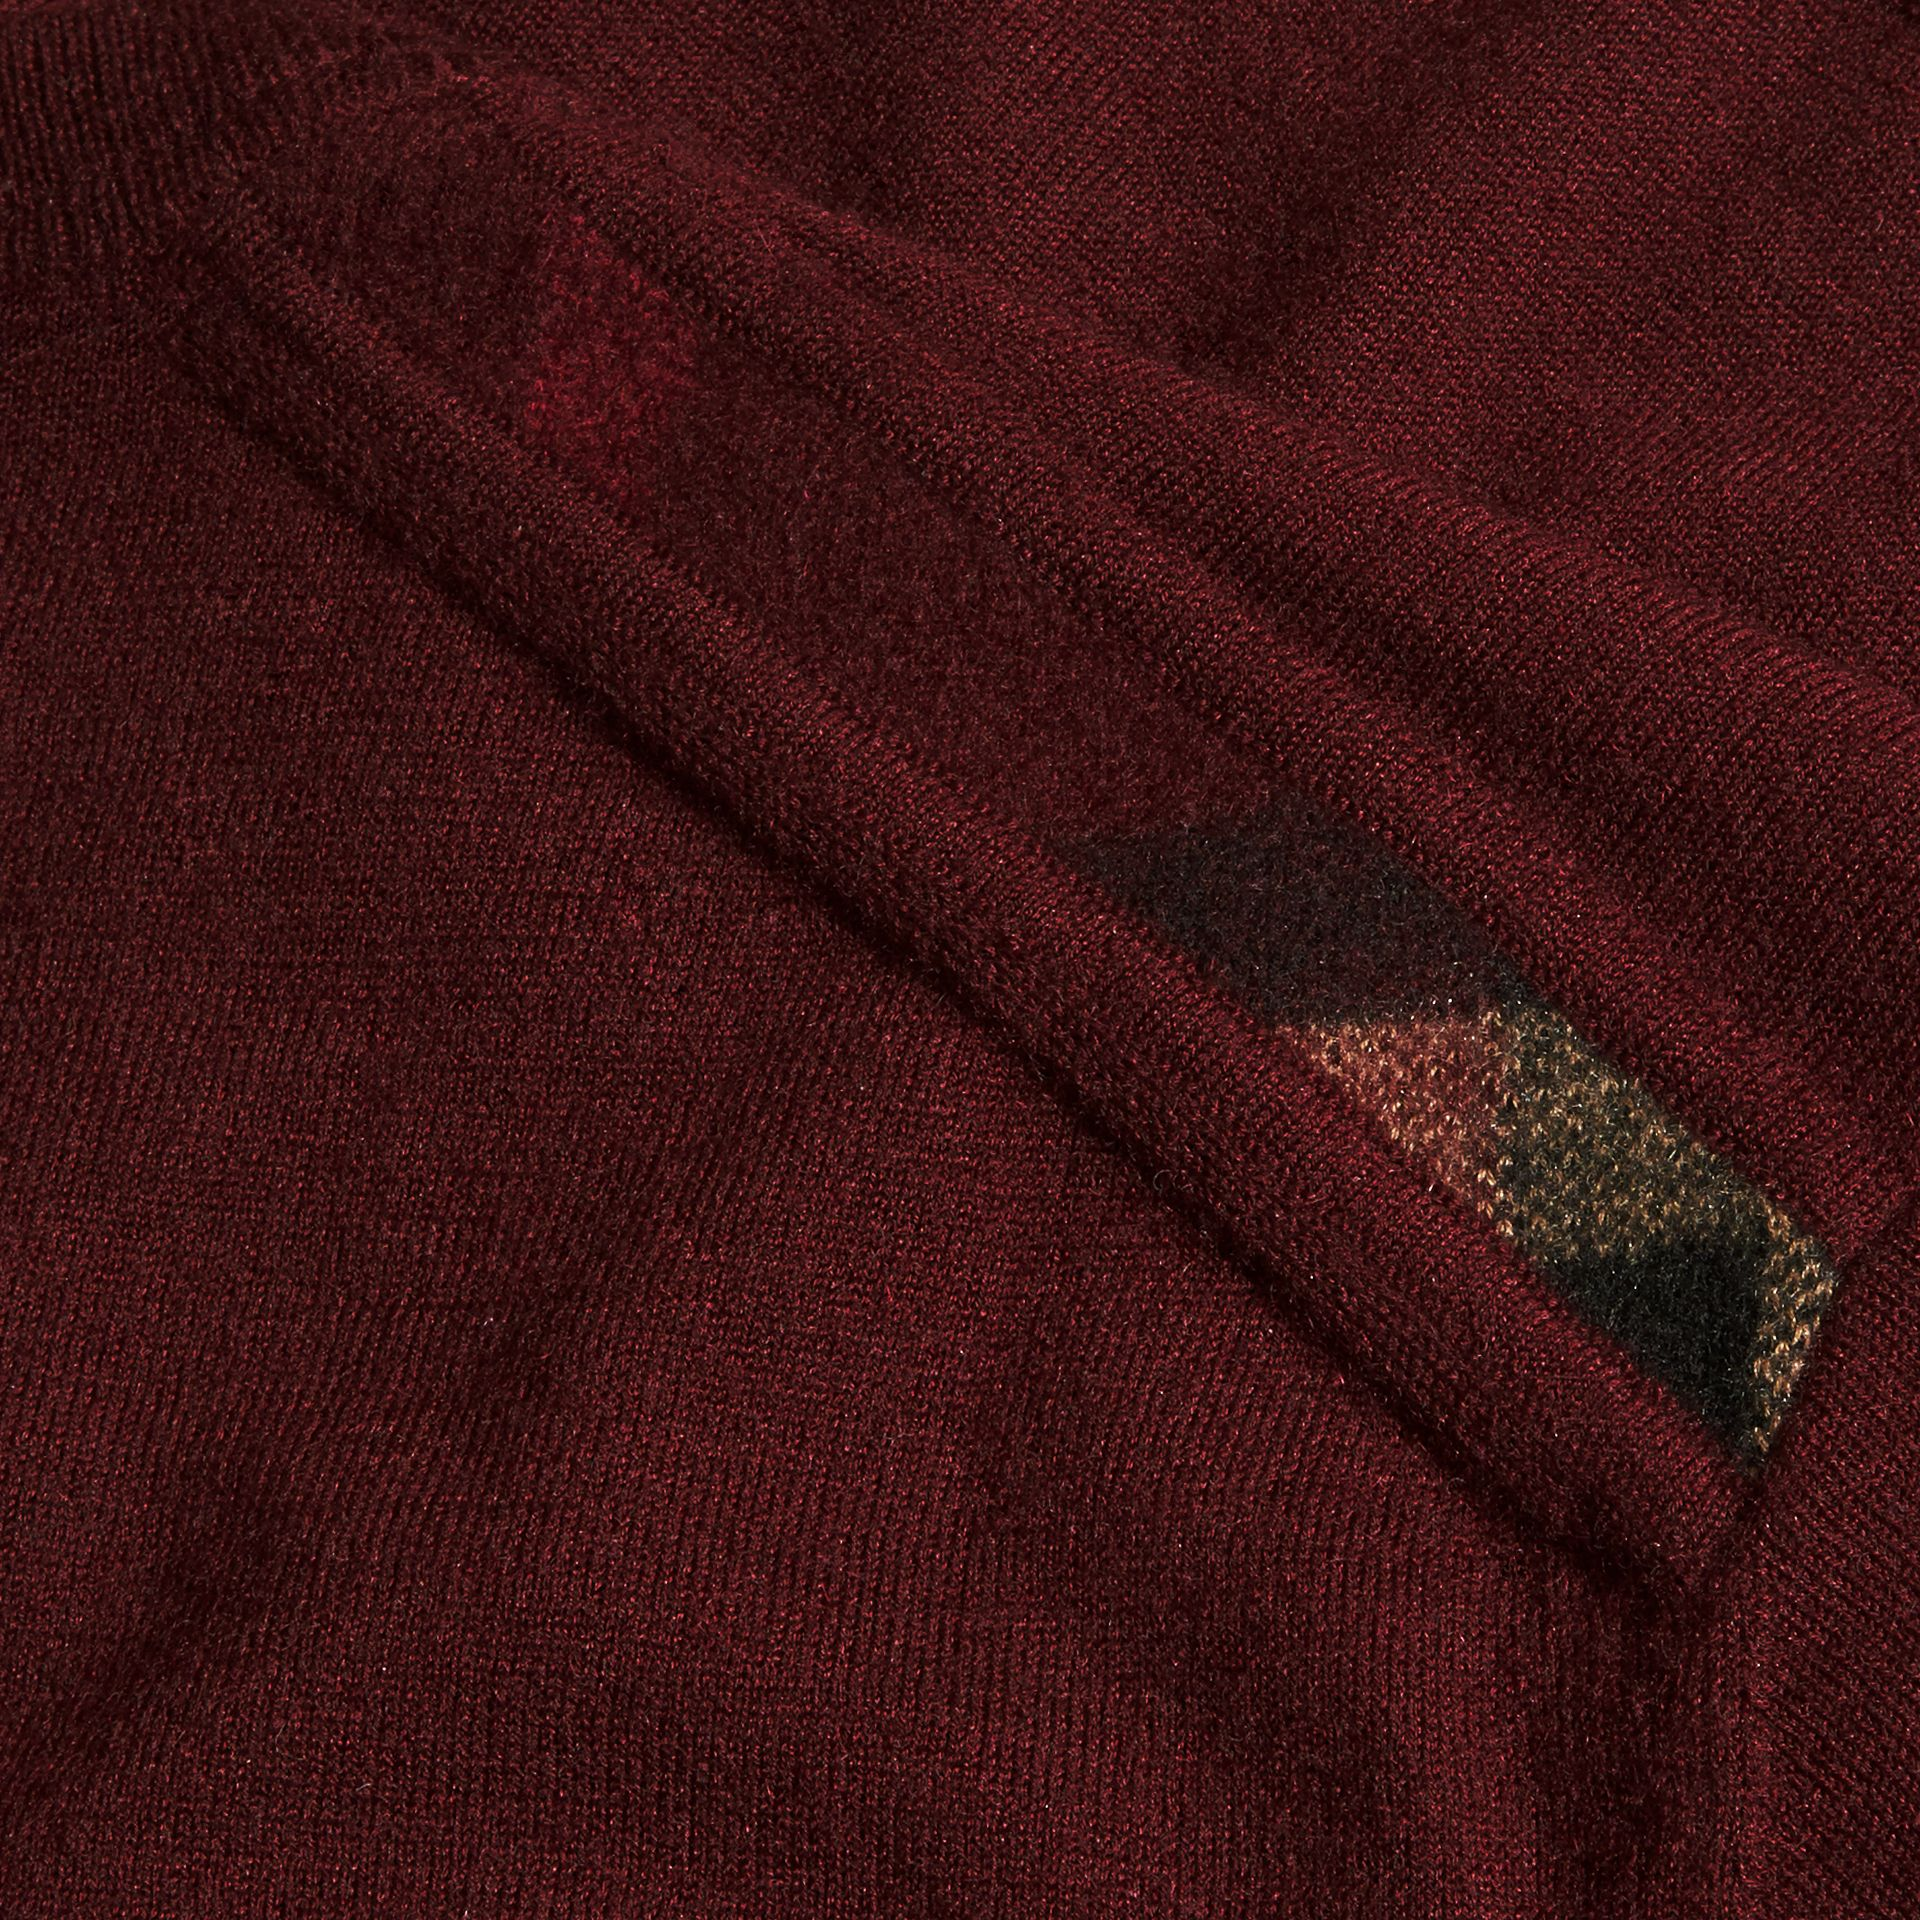 Deep claret Lightweight Crew Neck Cashmere Sweater with Check Trim Deep Claret - gallery image 2